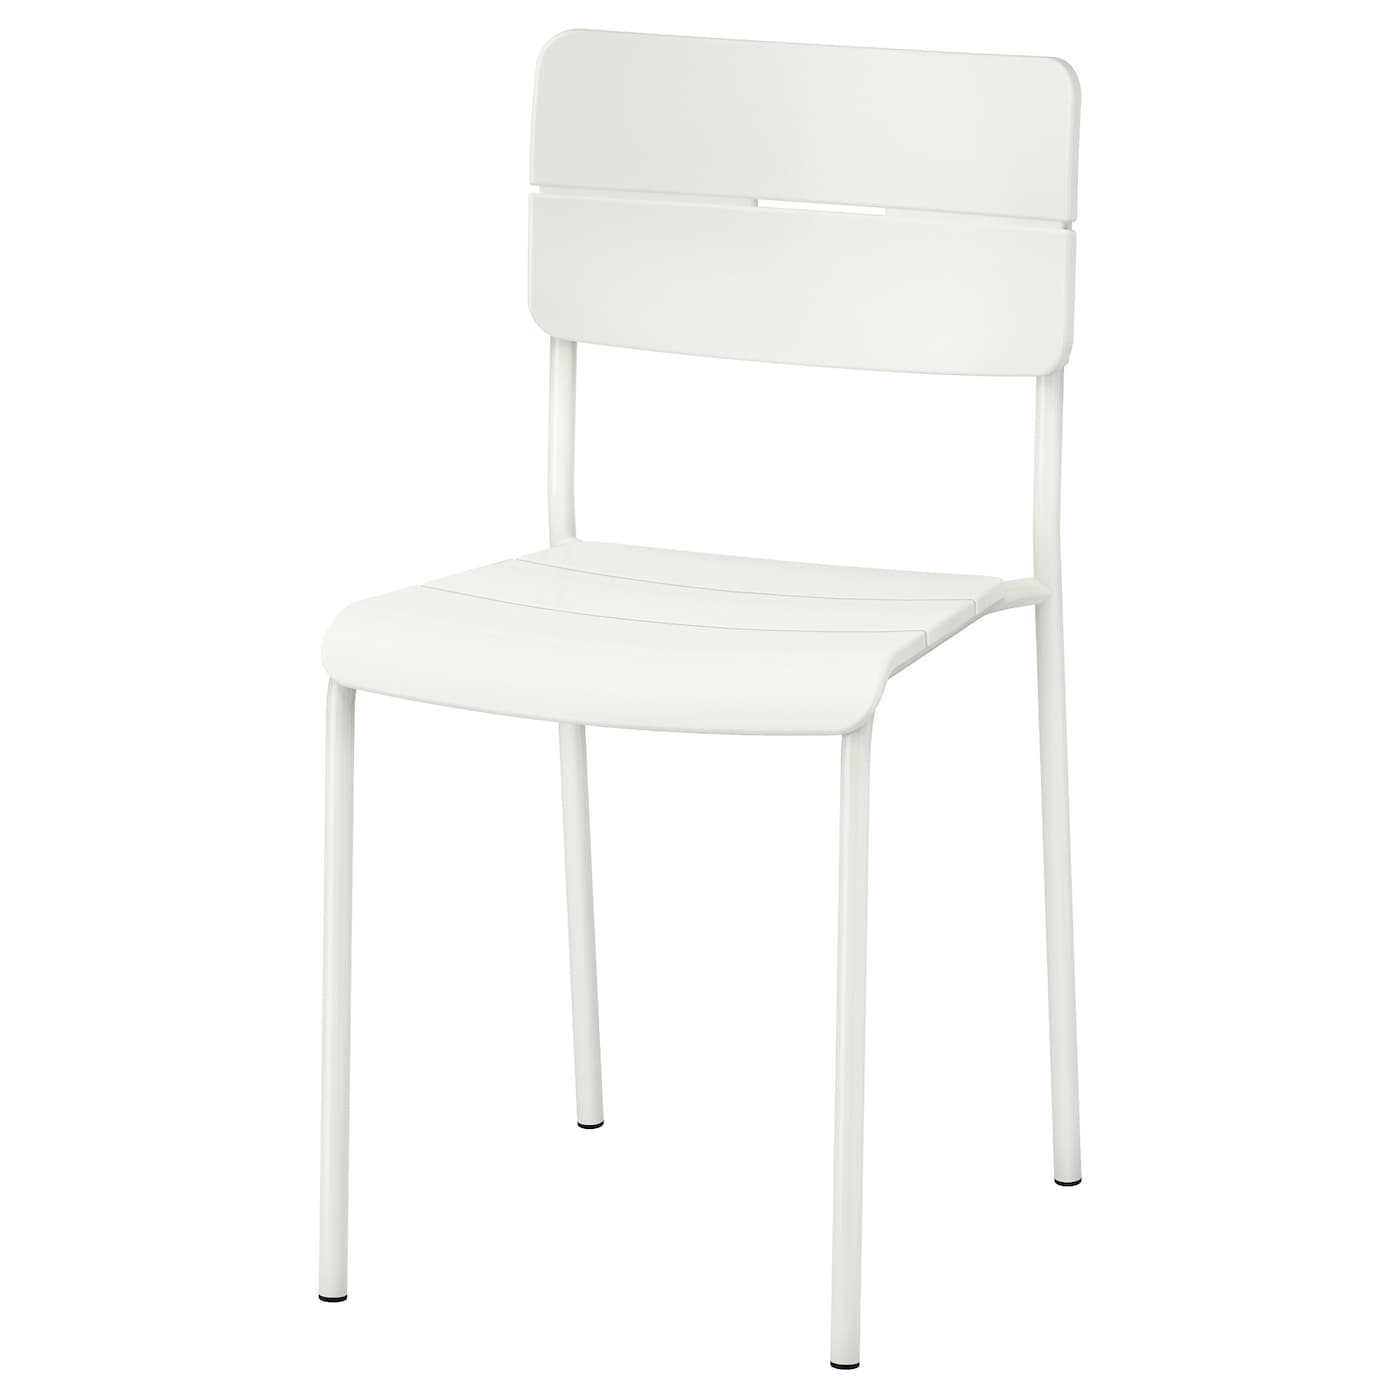 IKEA VÄDDÖ chair, outdoor Easy to keep clean – just wipe with a damp cloth.